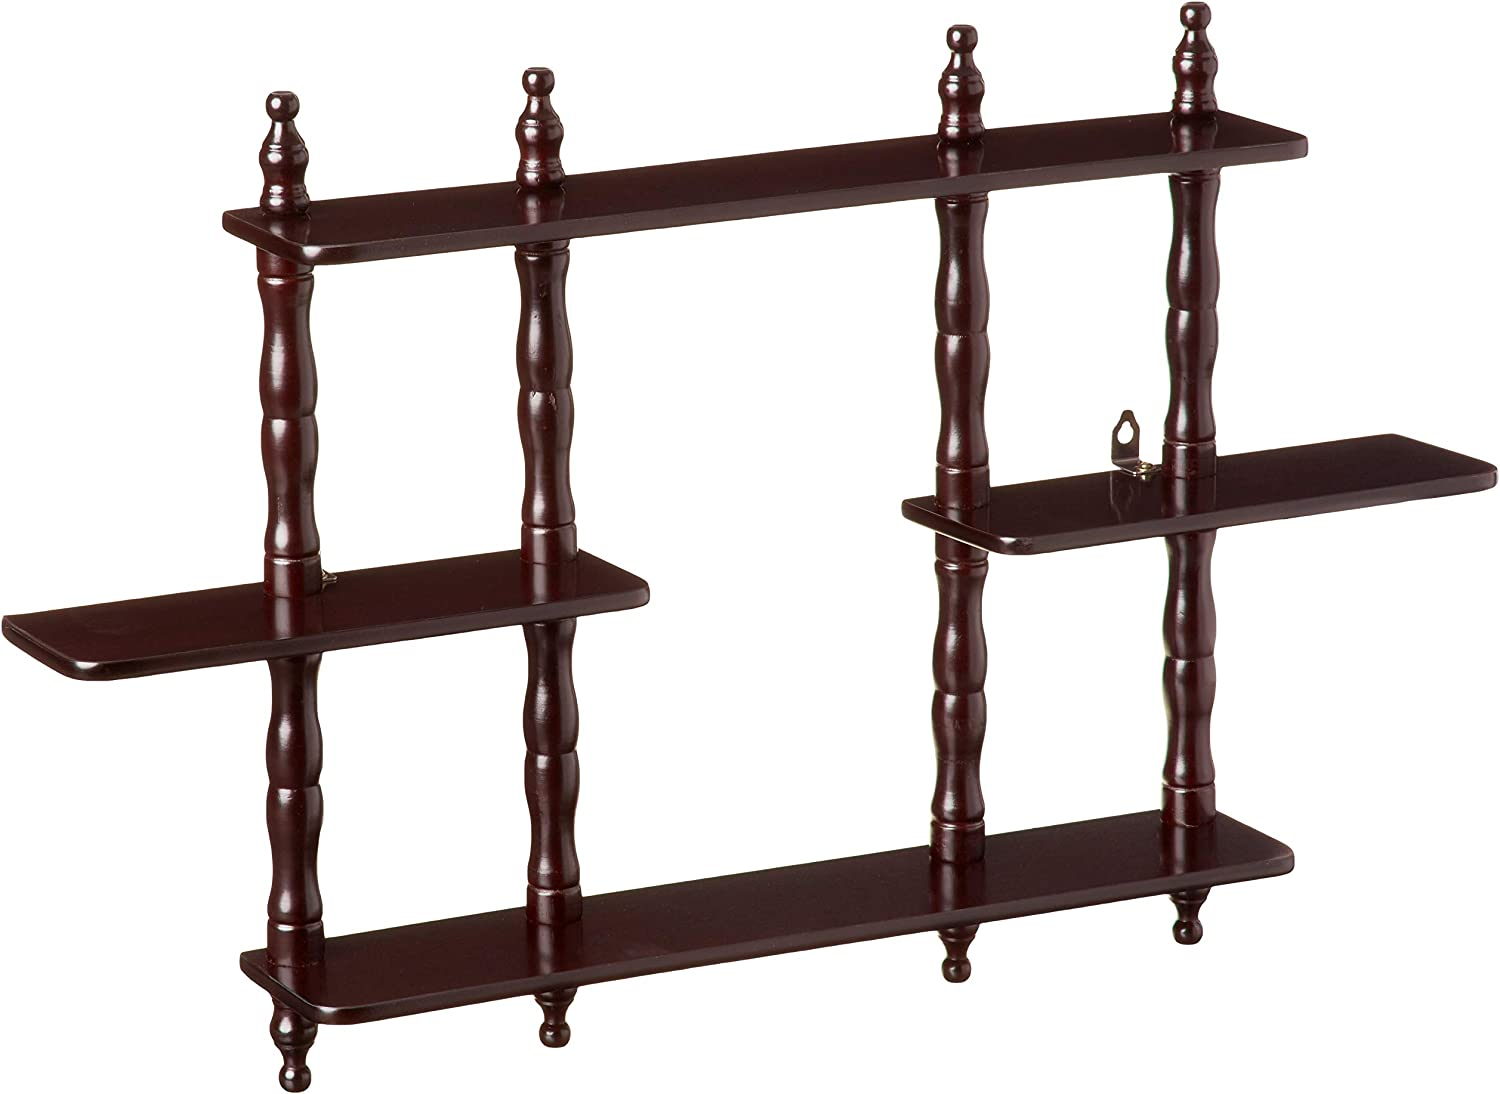 Frenchi Furniture 3 Tier Wall Shelf